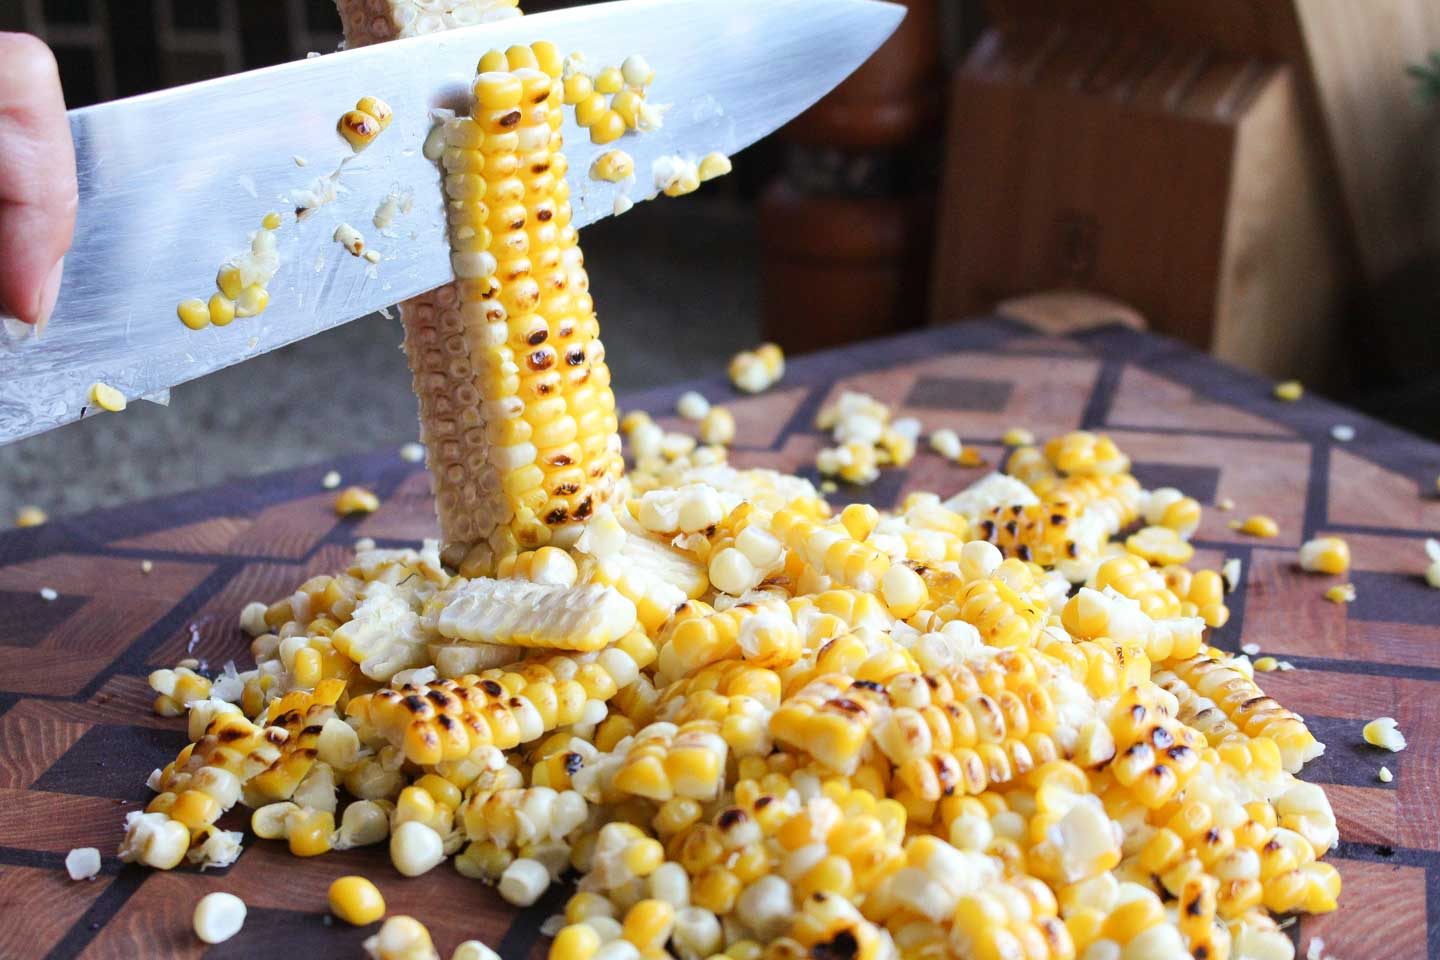 Closeup of a chef's knife cutting grilled corn off a cob onto a patterned cutting board.